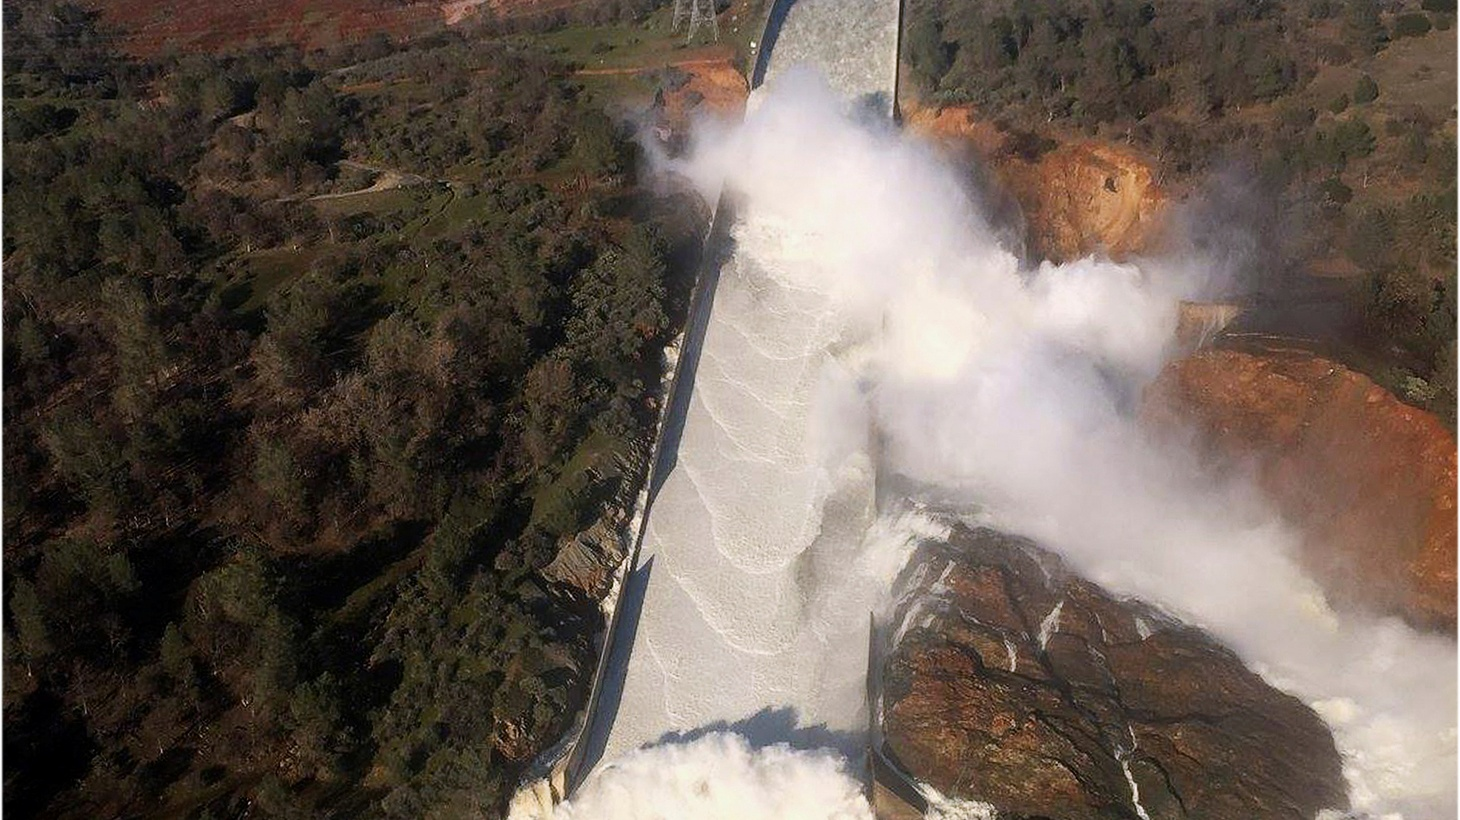 Recent storms have put extra pressure on Northern California's Oroville Dam. Two of the channels that drain the dam are damaged and nearly 200,000 people living downstream have been evacuated. Workers are trying to come up with a fix before more storms move in. We also look at the infrastructure of dams throughout California and some necessary improvements.